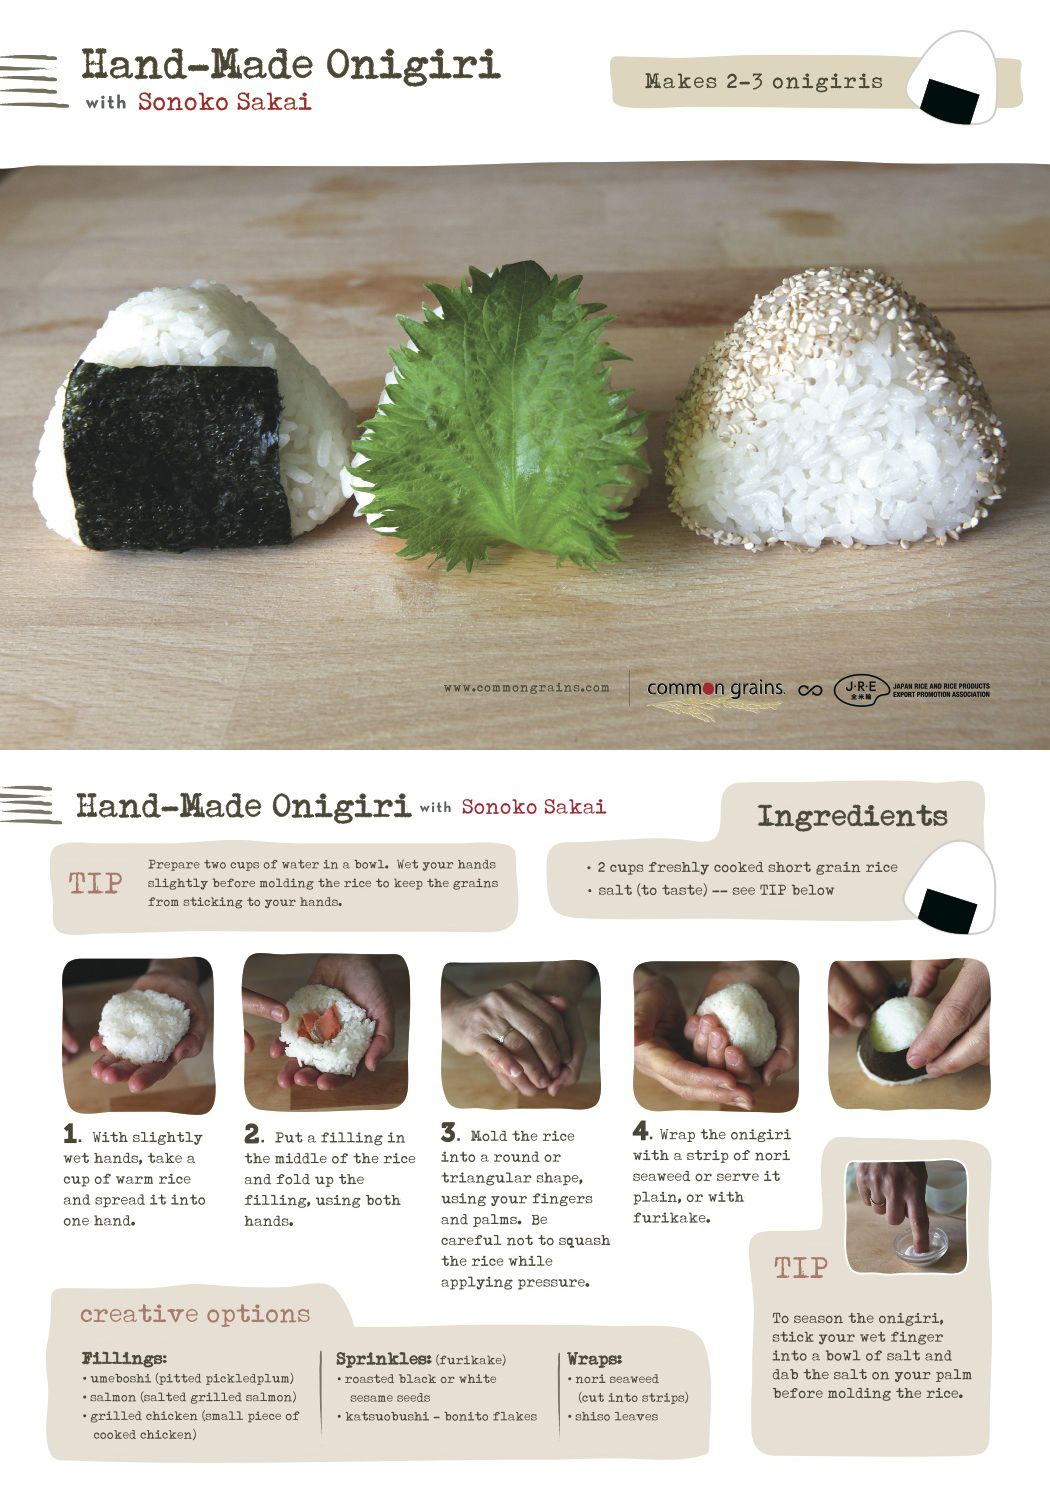 My Asia Küche At A Glance For Onigiri How To Make A Japanese Rice Ball